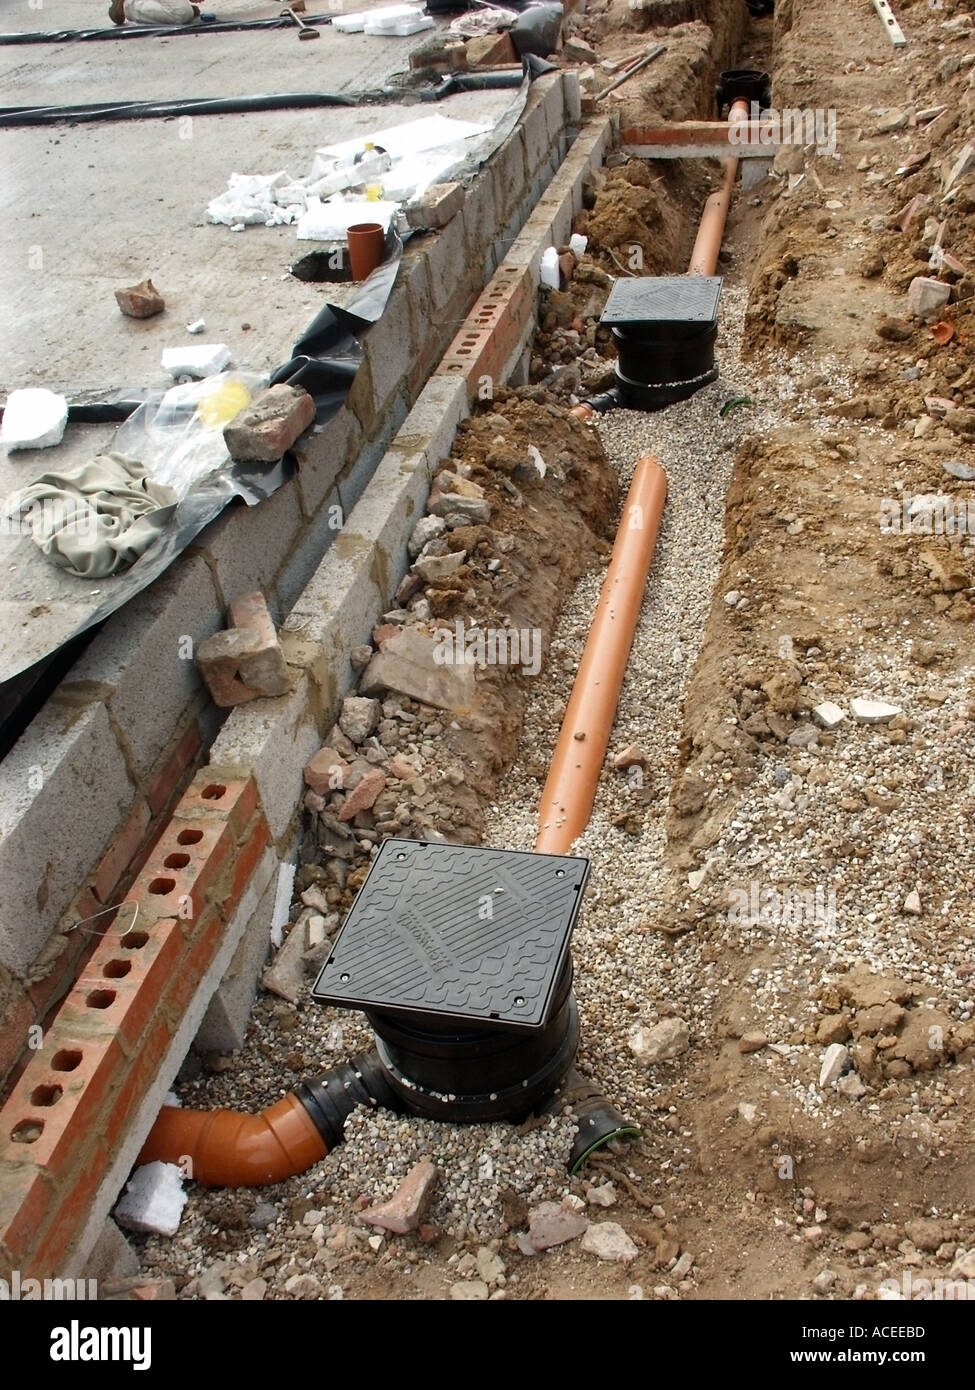 part of foul drainage system for new house with plastic pipes manhole shows bridging lintel